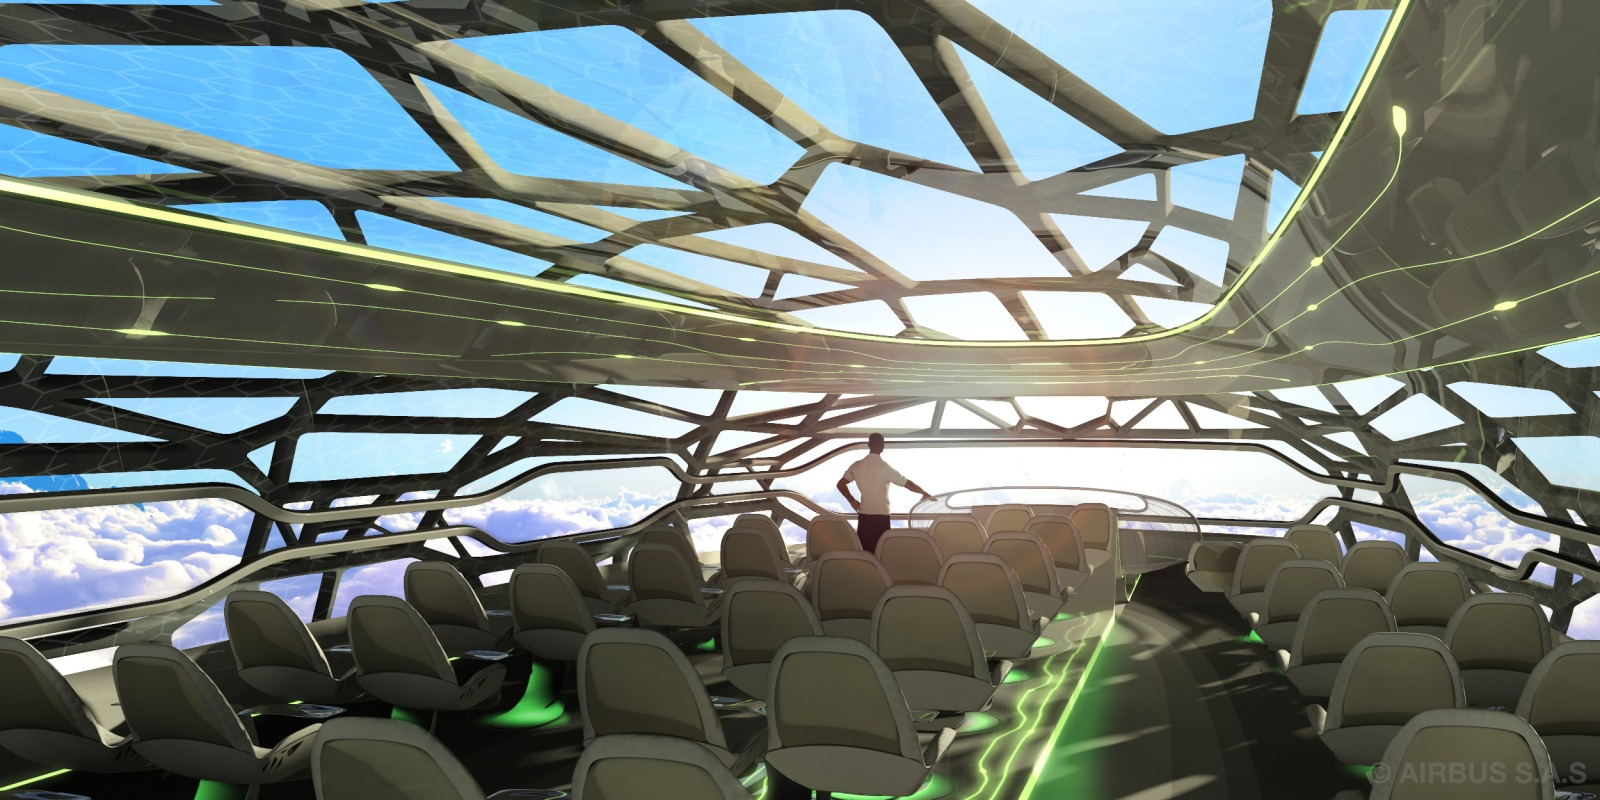 The future by Airbus - The Vitalising Zone by Day